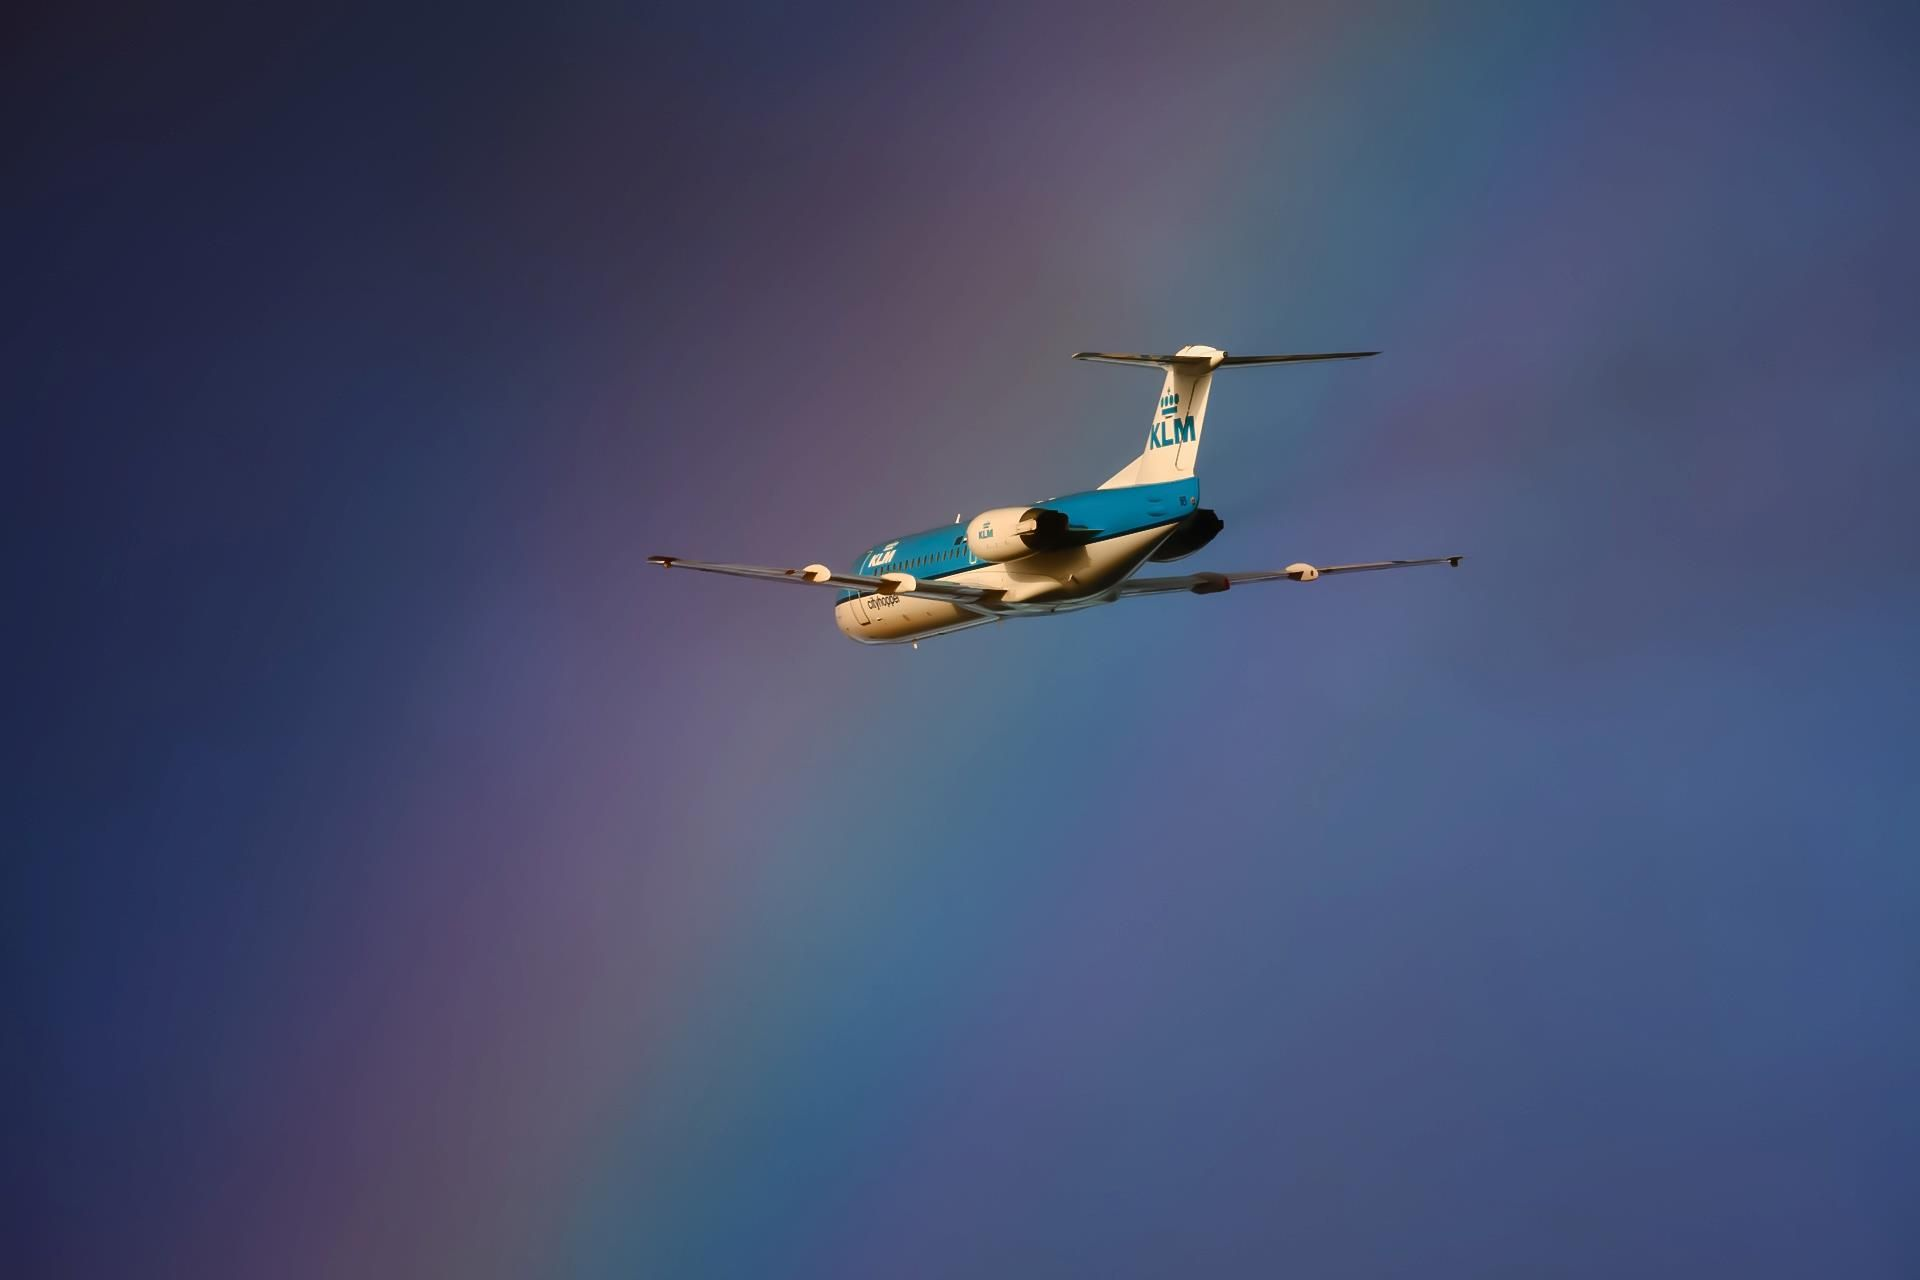 Photo uploaded on our #KLM Facebook Wall by: Andres Bolkenbaas